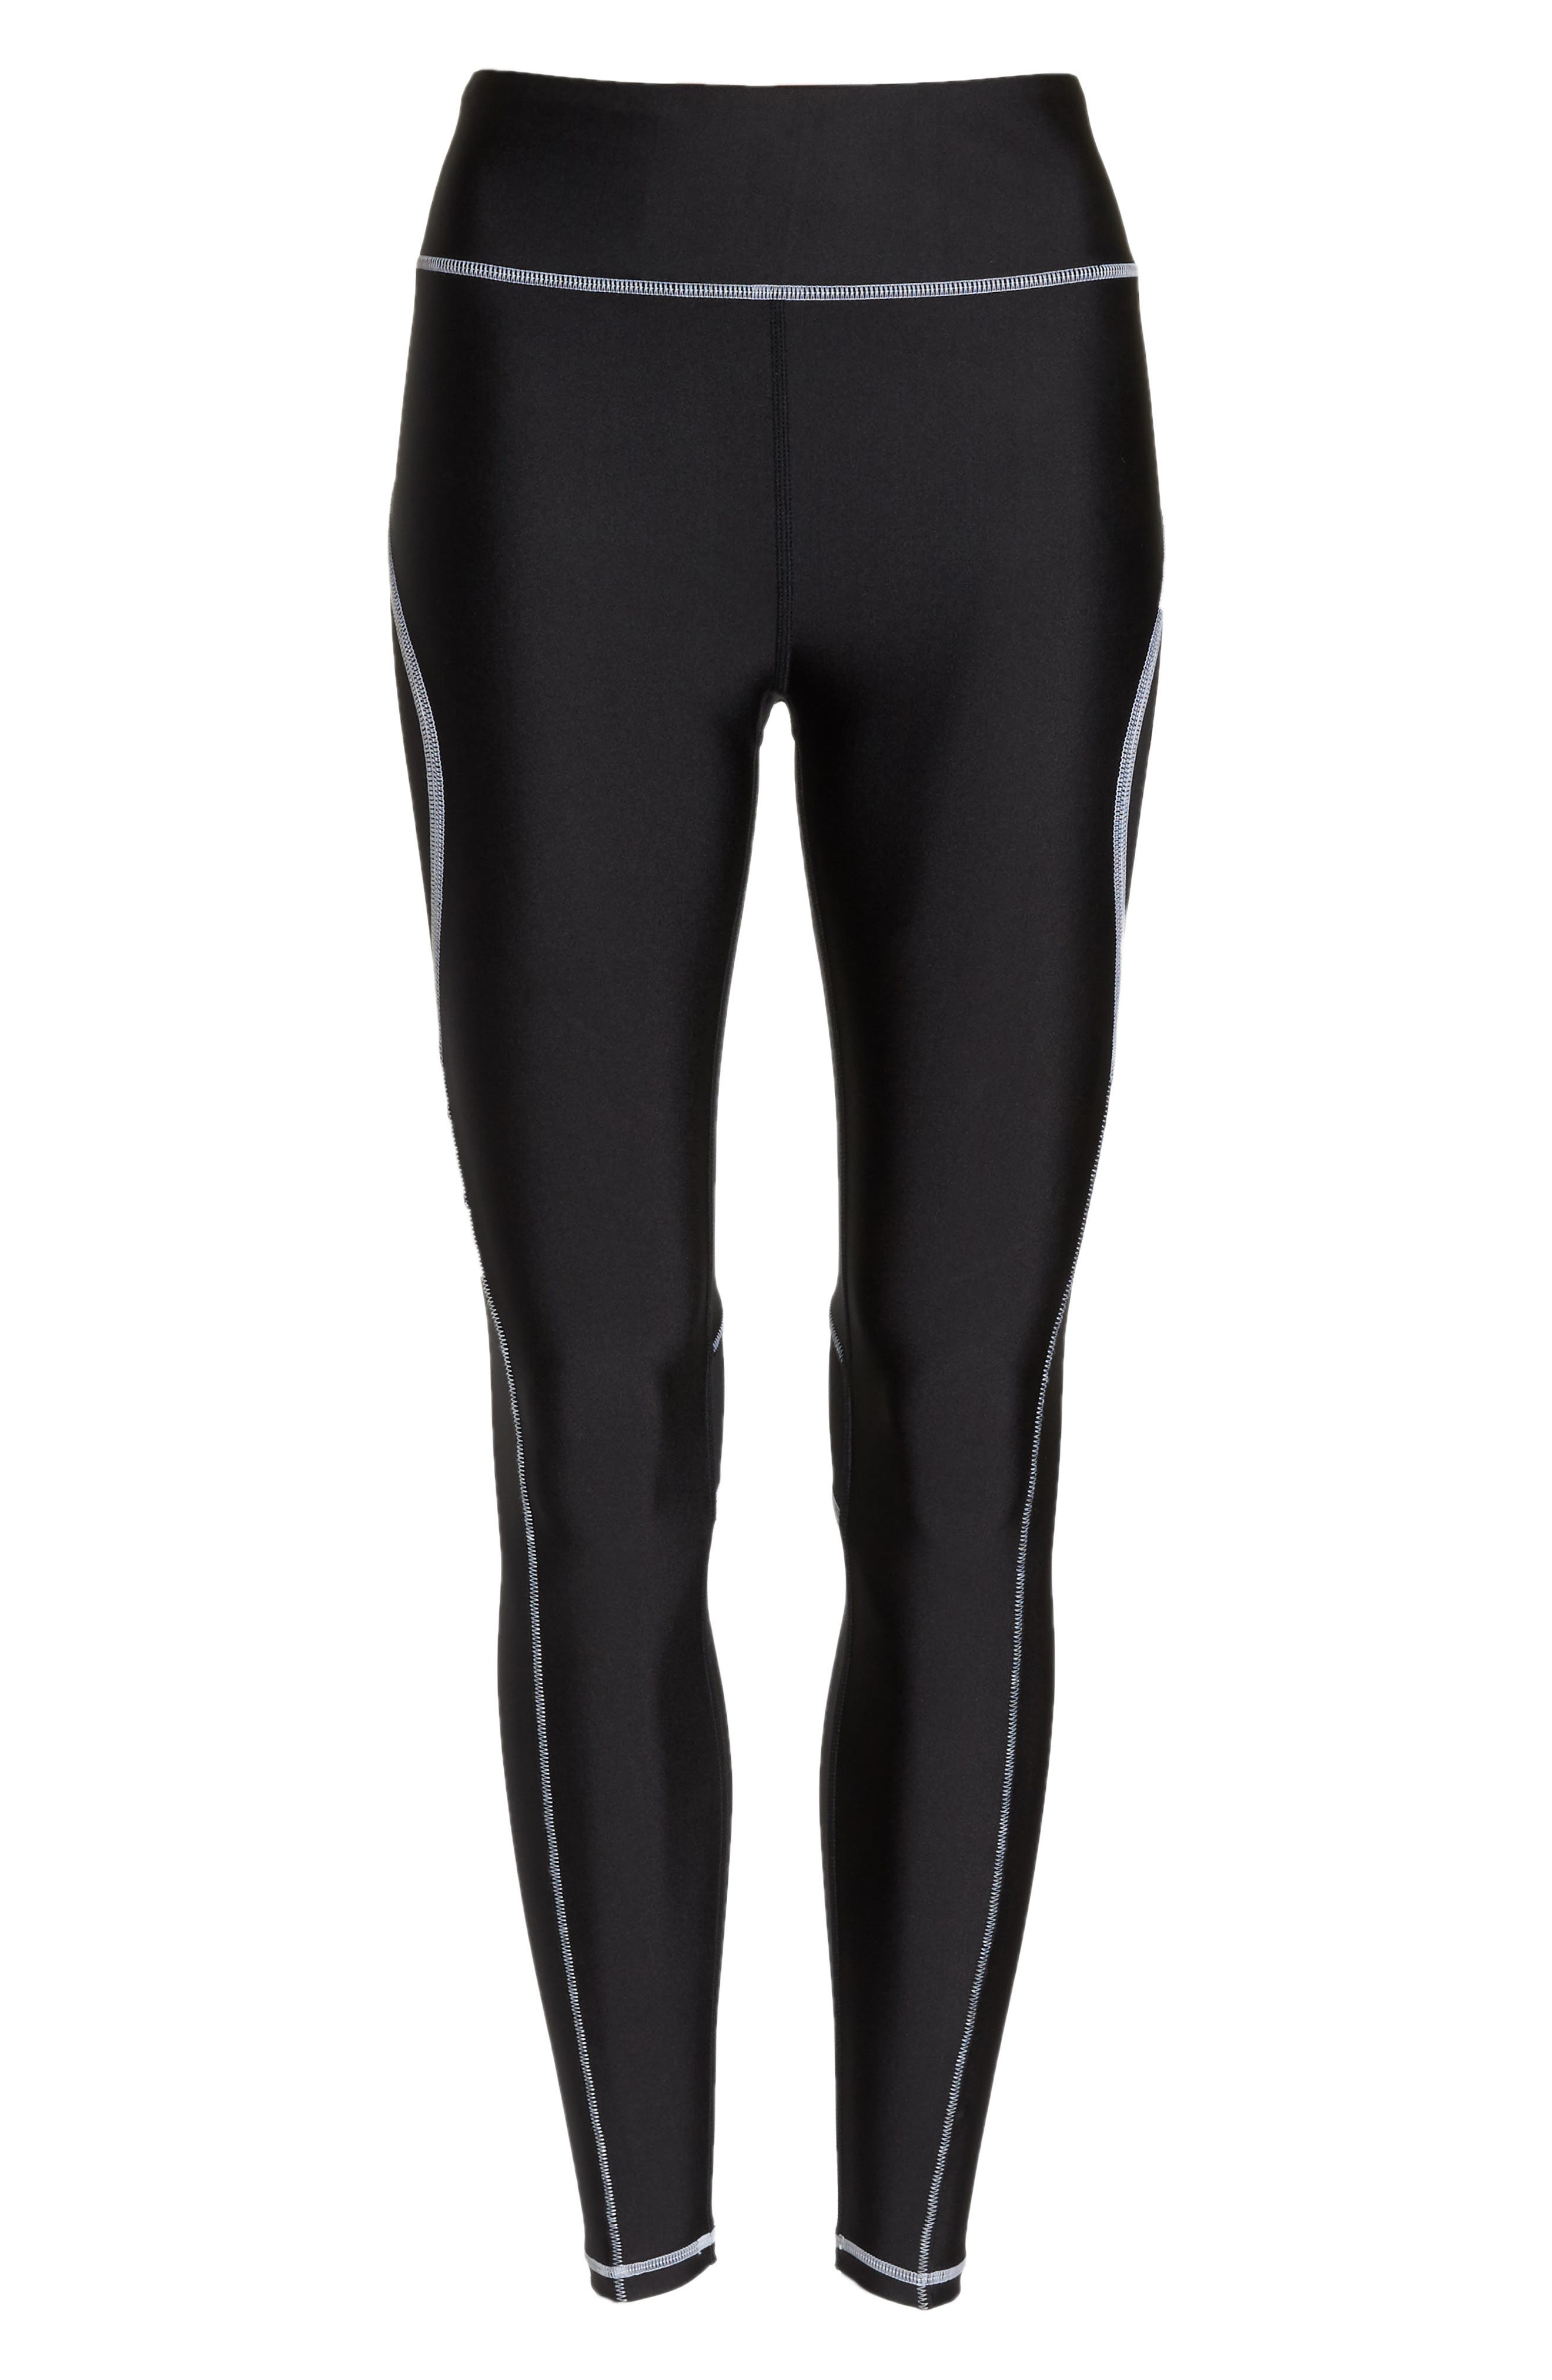 Surf Tights,                             Alternate thumbnail 7, color,                             BLACK/ WHITE